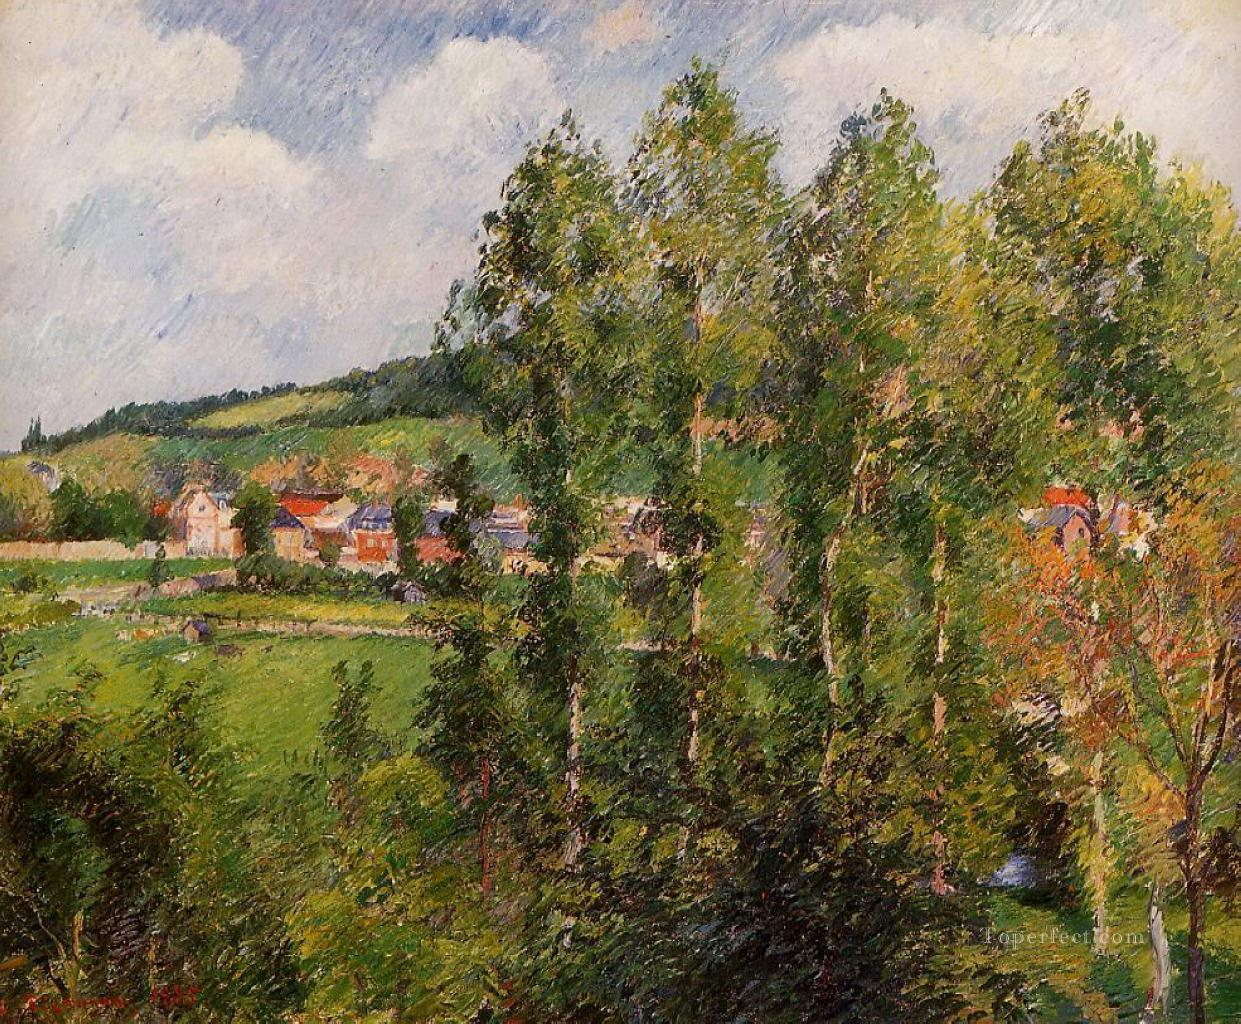 gizors new section Camille Pissarro scenery Oil Paintings